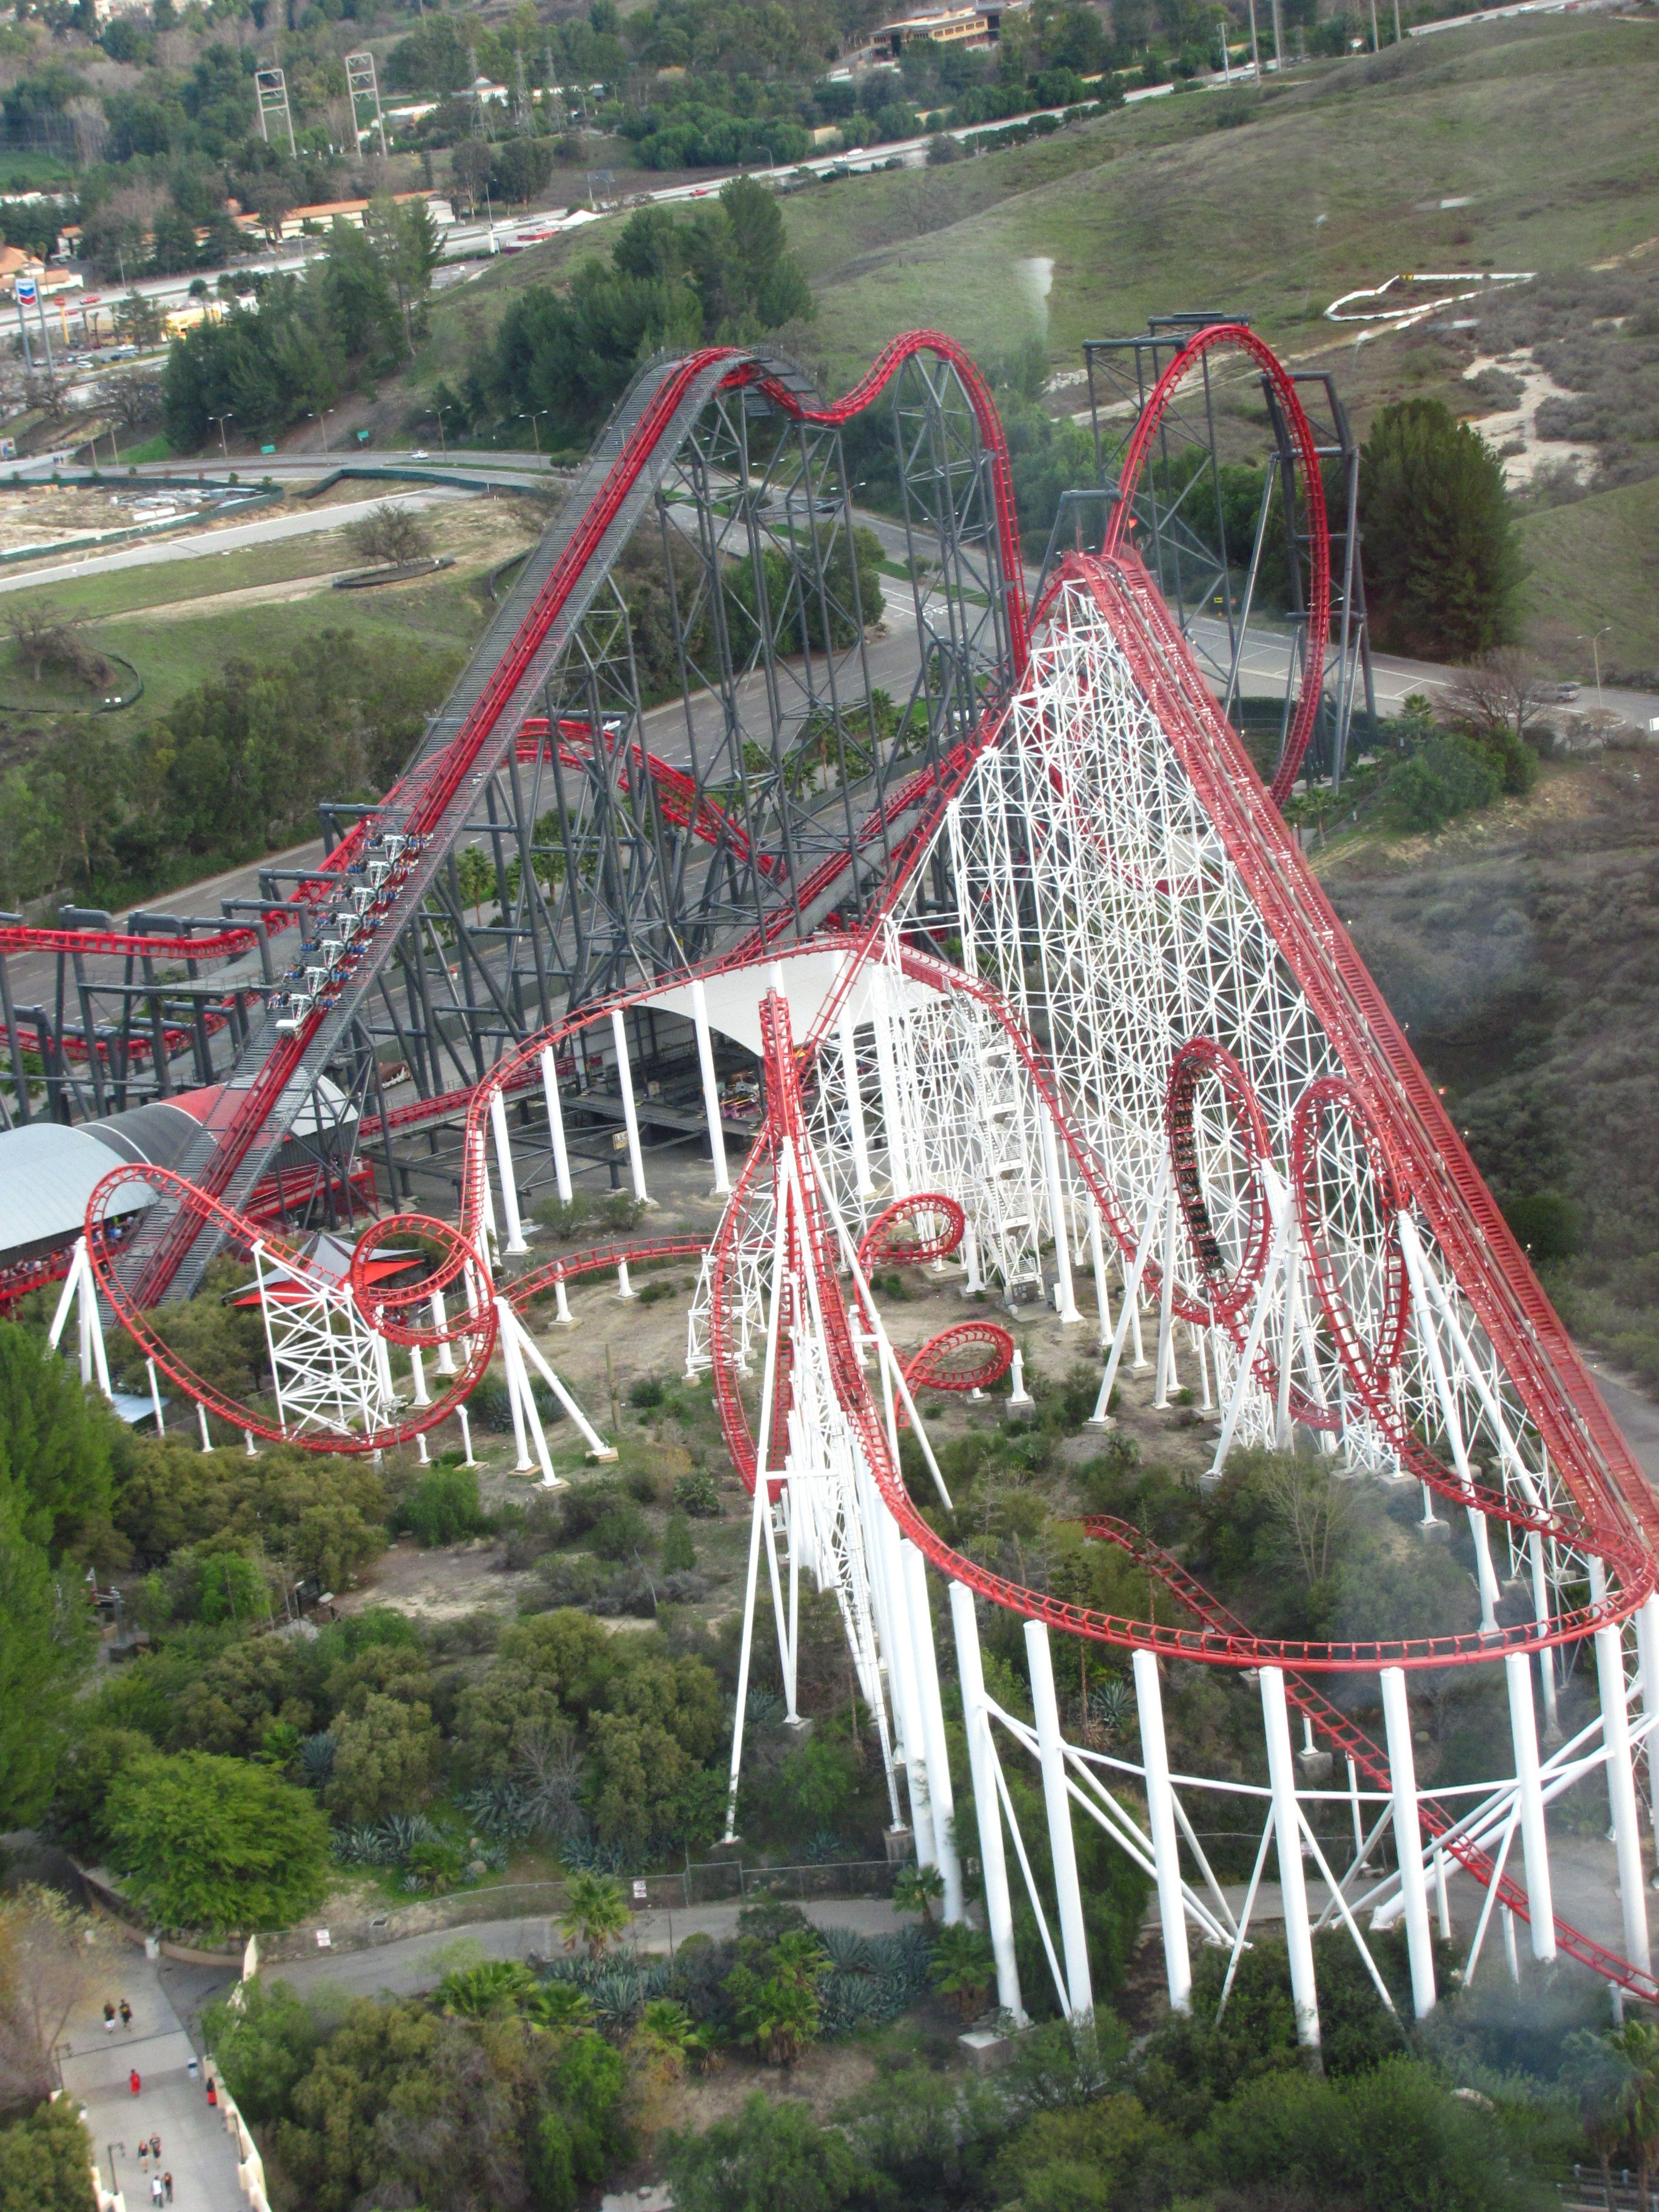 X2 And Viper At Six Flags Magic Mountain Theme Parks Rides Roller Coaster Amusement Park